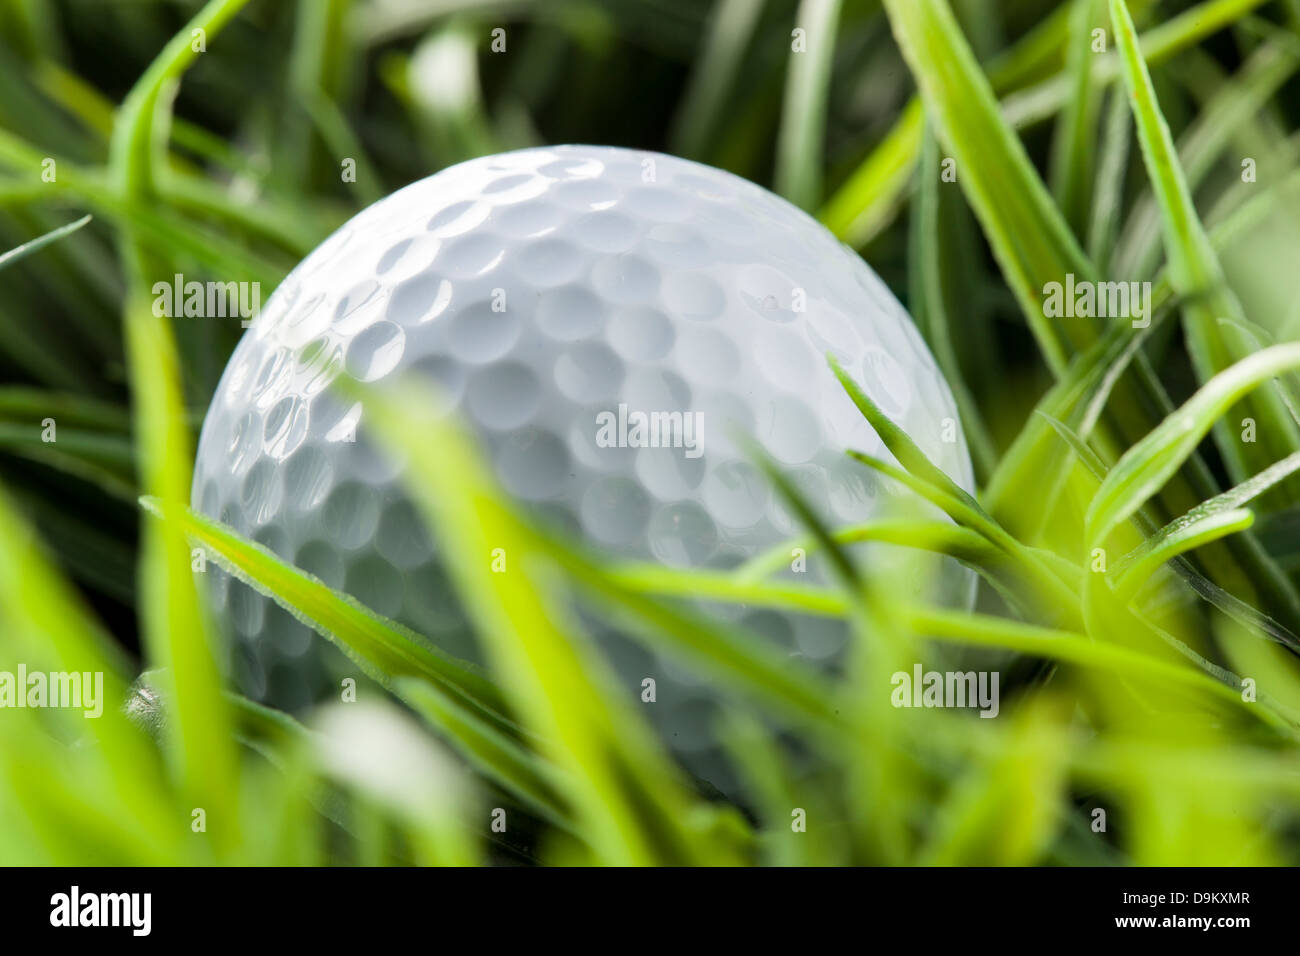 Pure White Golfball on bright green grass - Stock Image